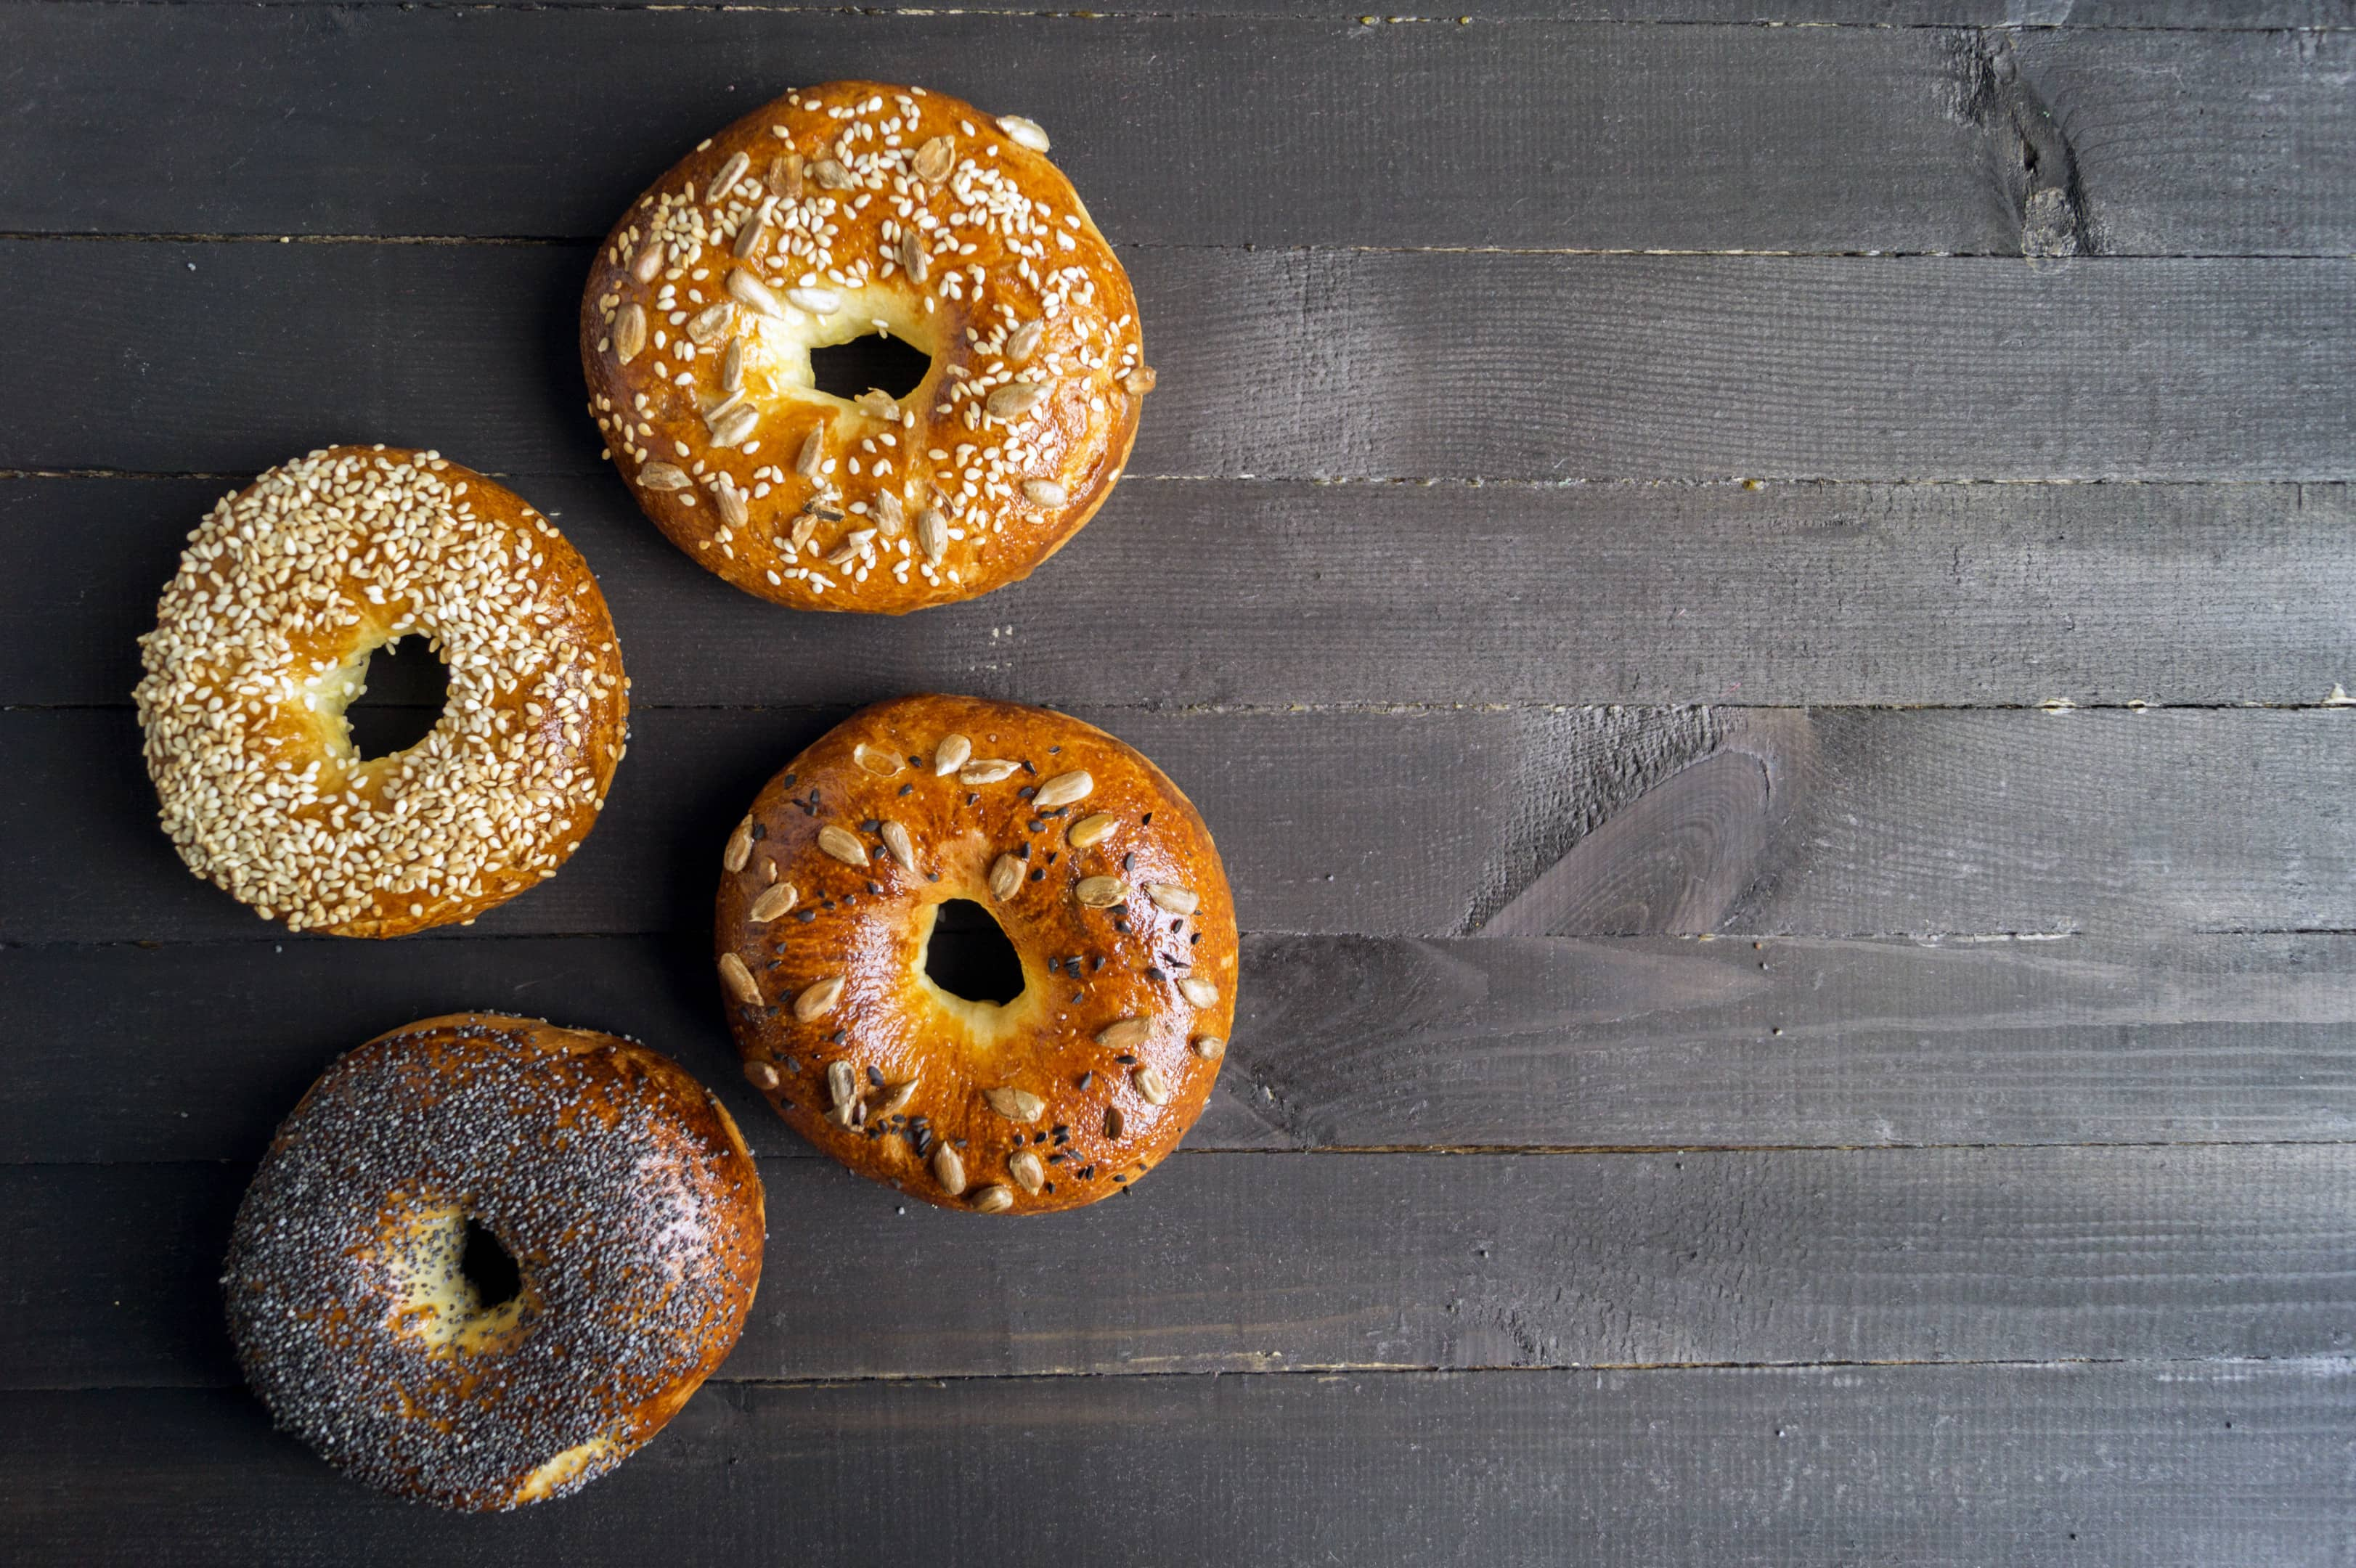 Bagels with seeds on a black table